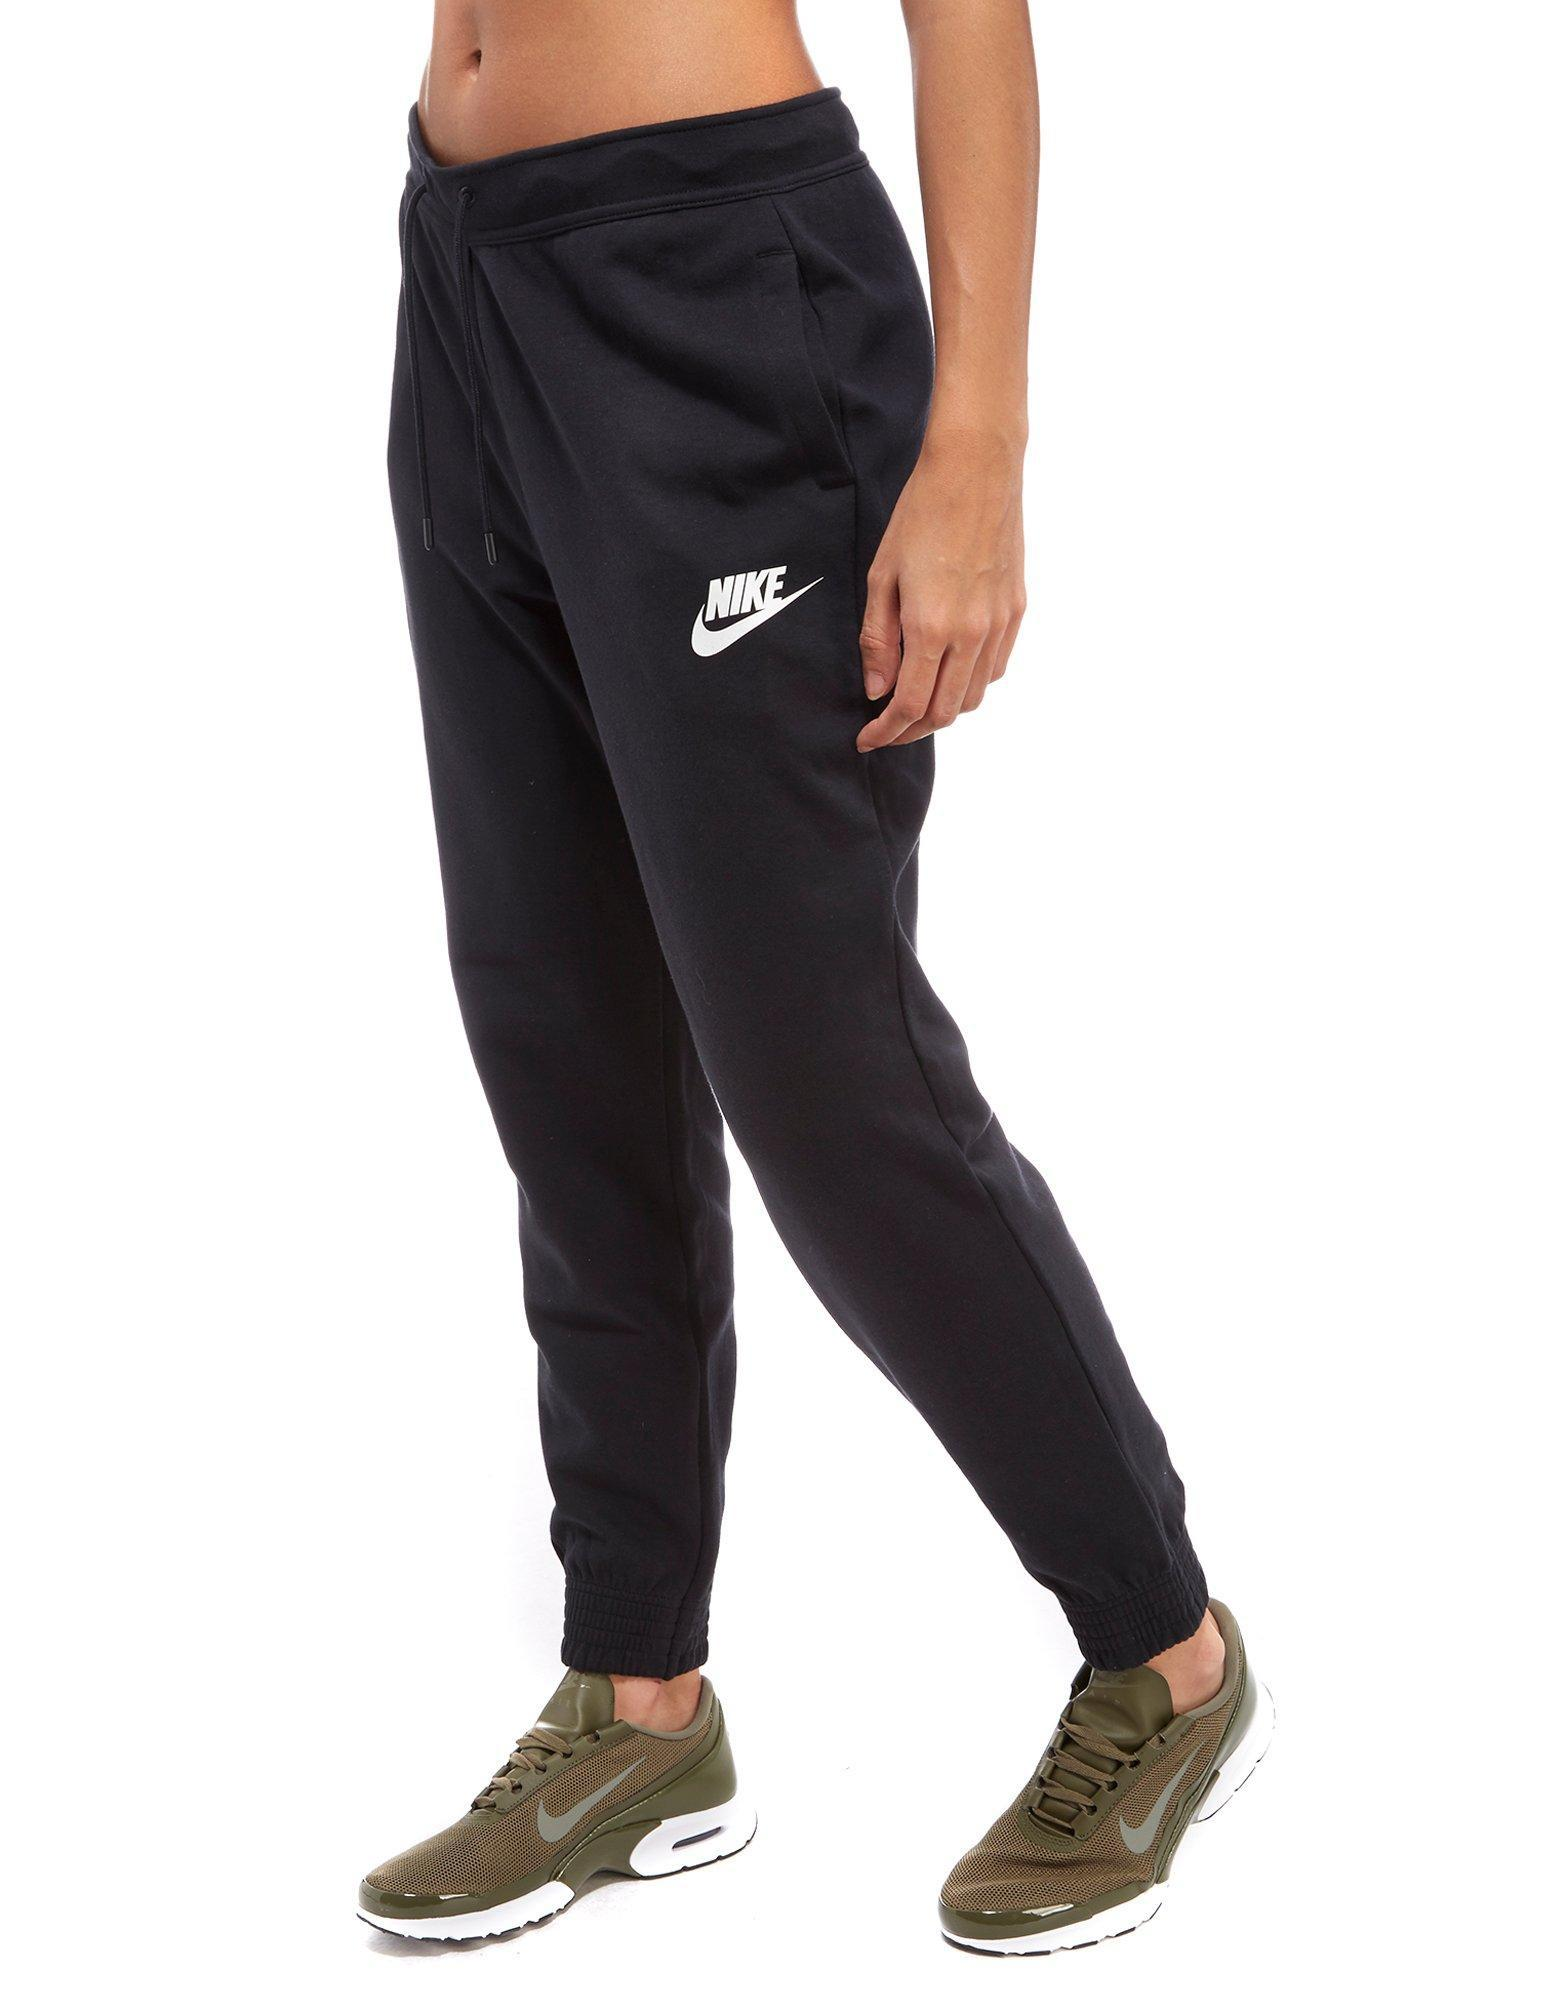 Nike Cotton Air Max Track Pants In Black Lyst